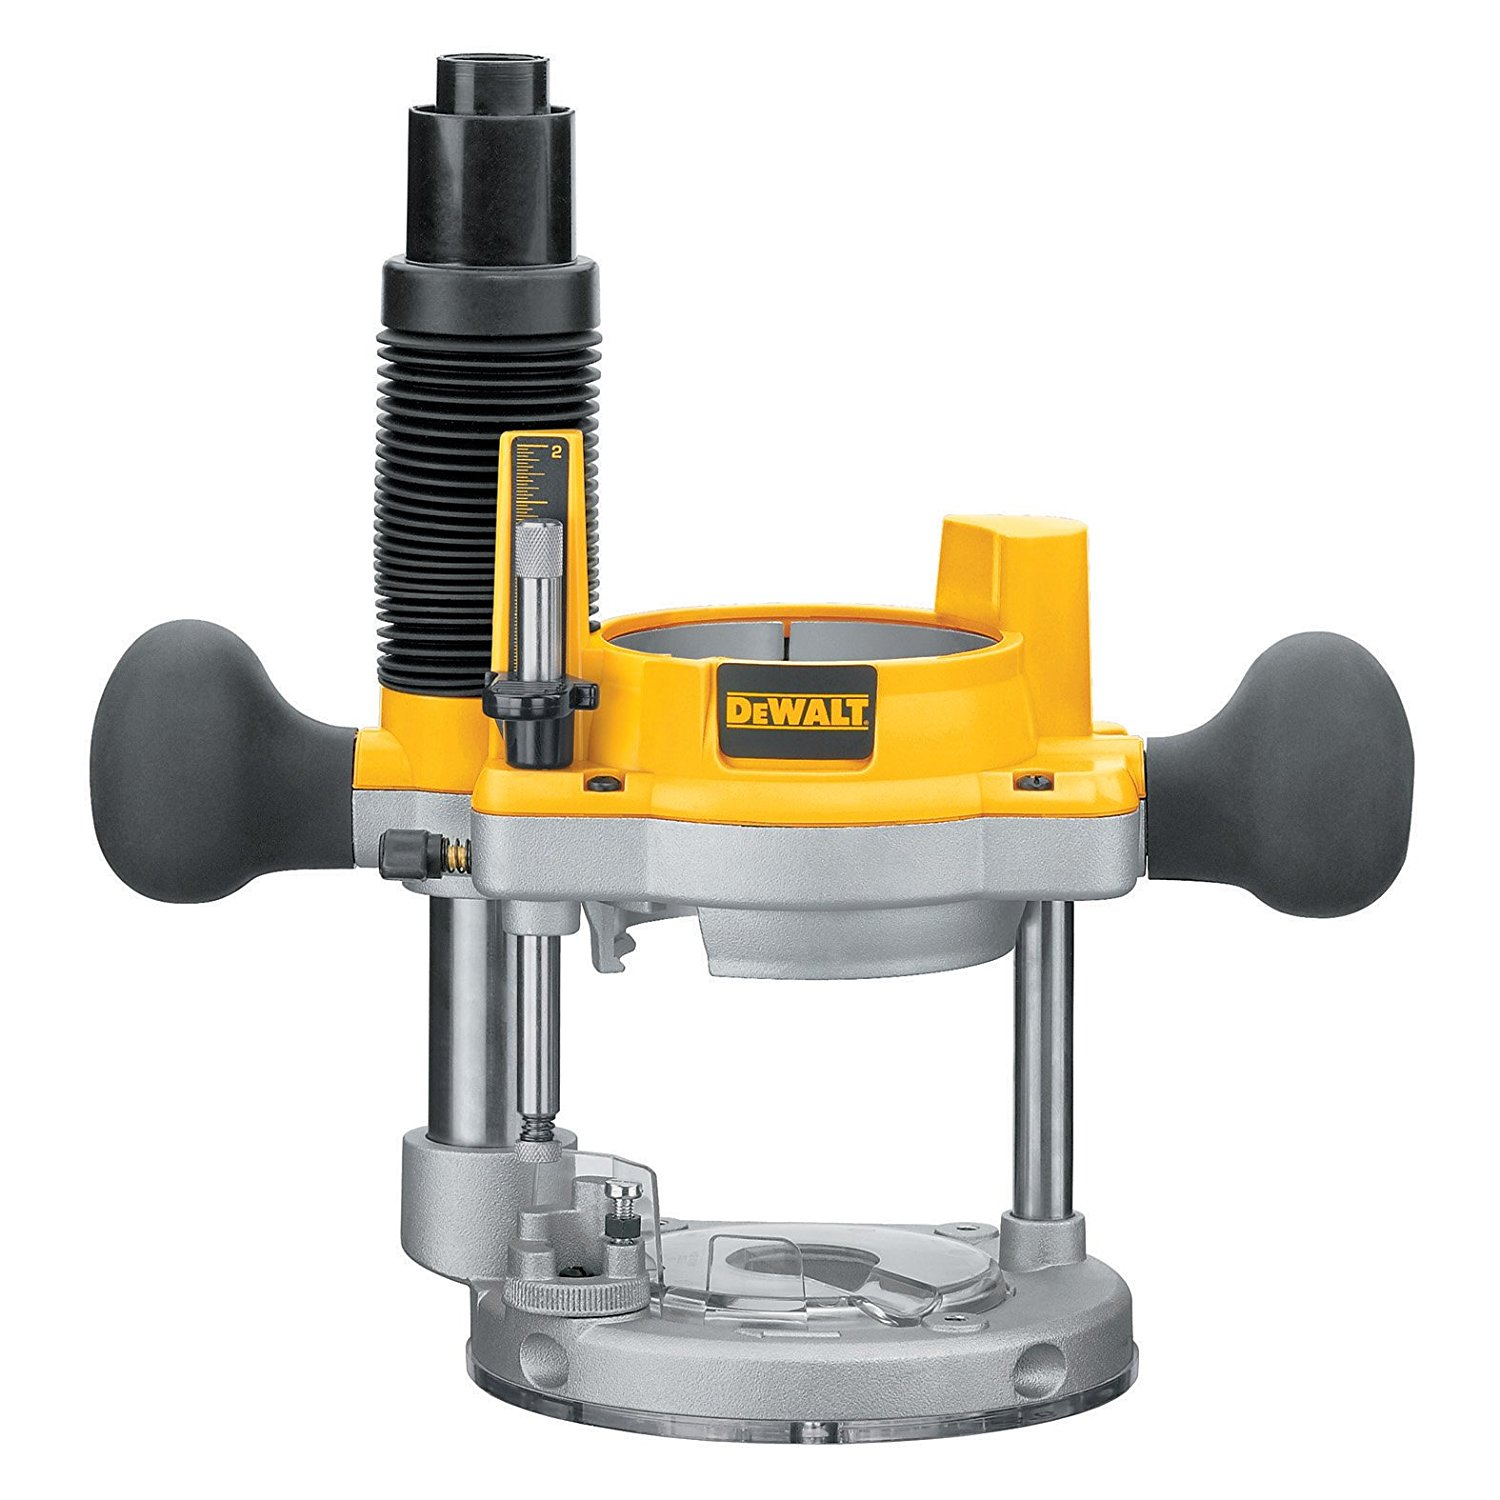 DEWALT drill press